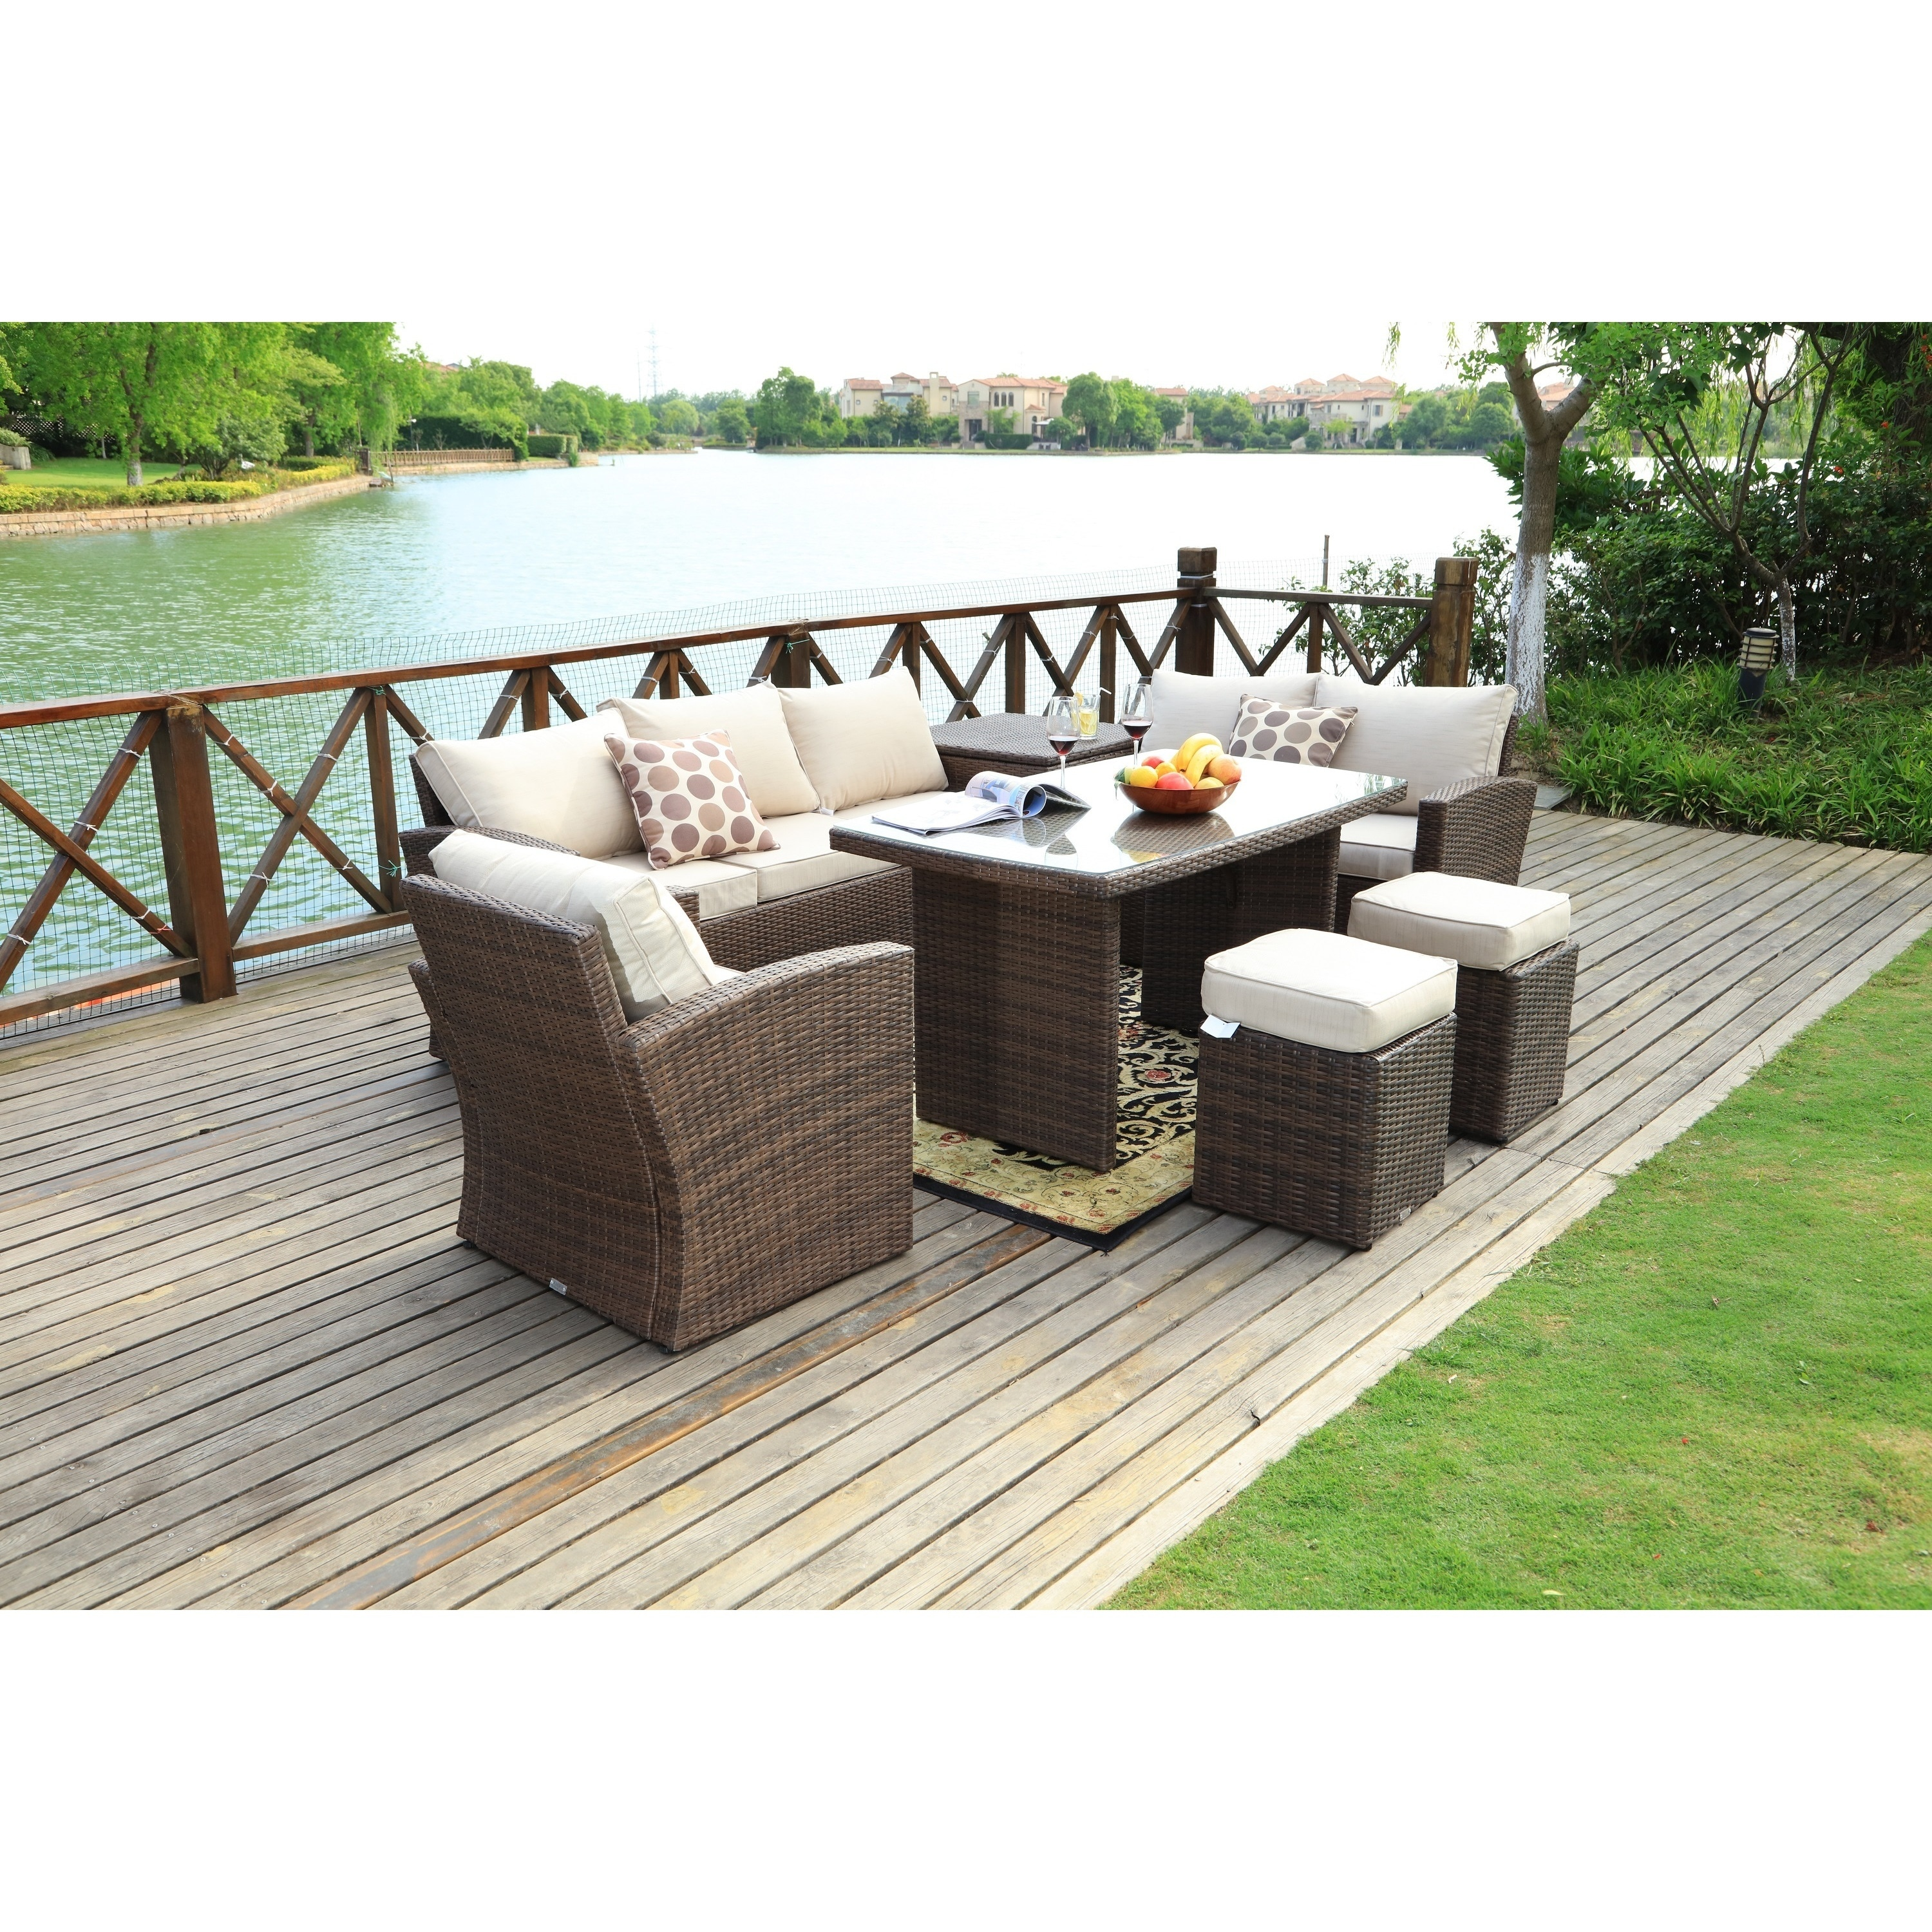 Shop cannes outdoor 7 piece patio furniture set with side storage box by direct wicker free shipping today overstock 16416700